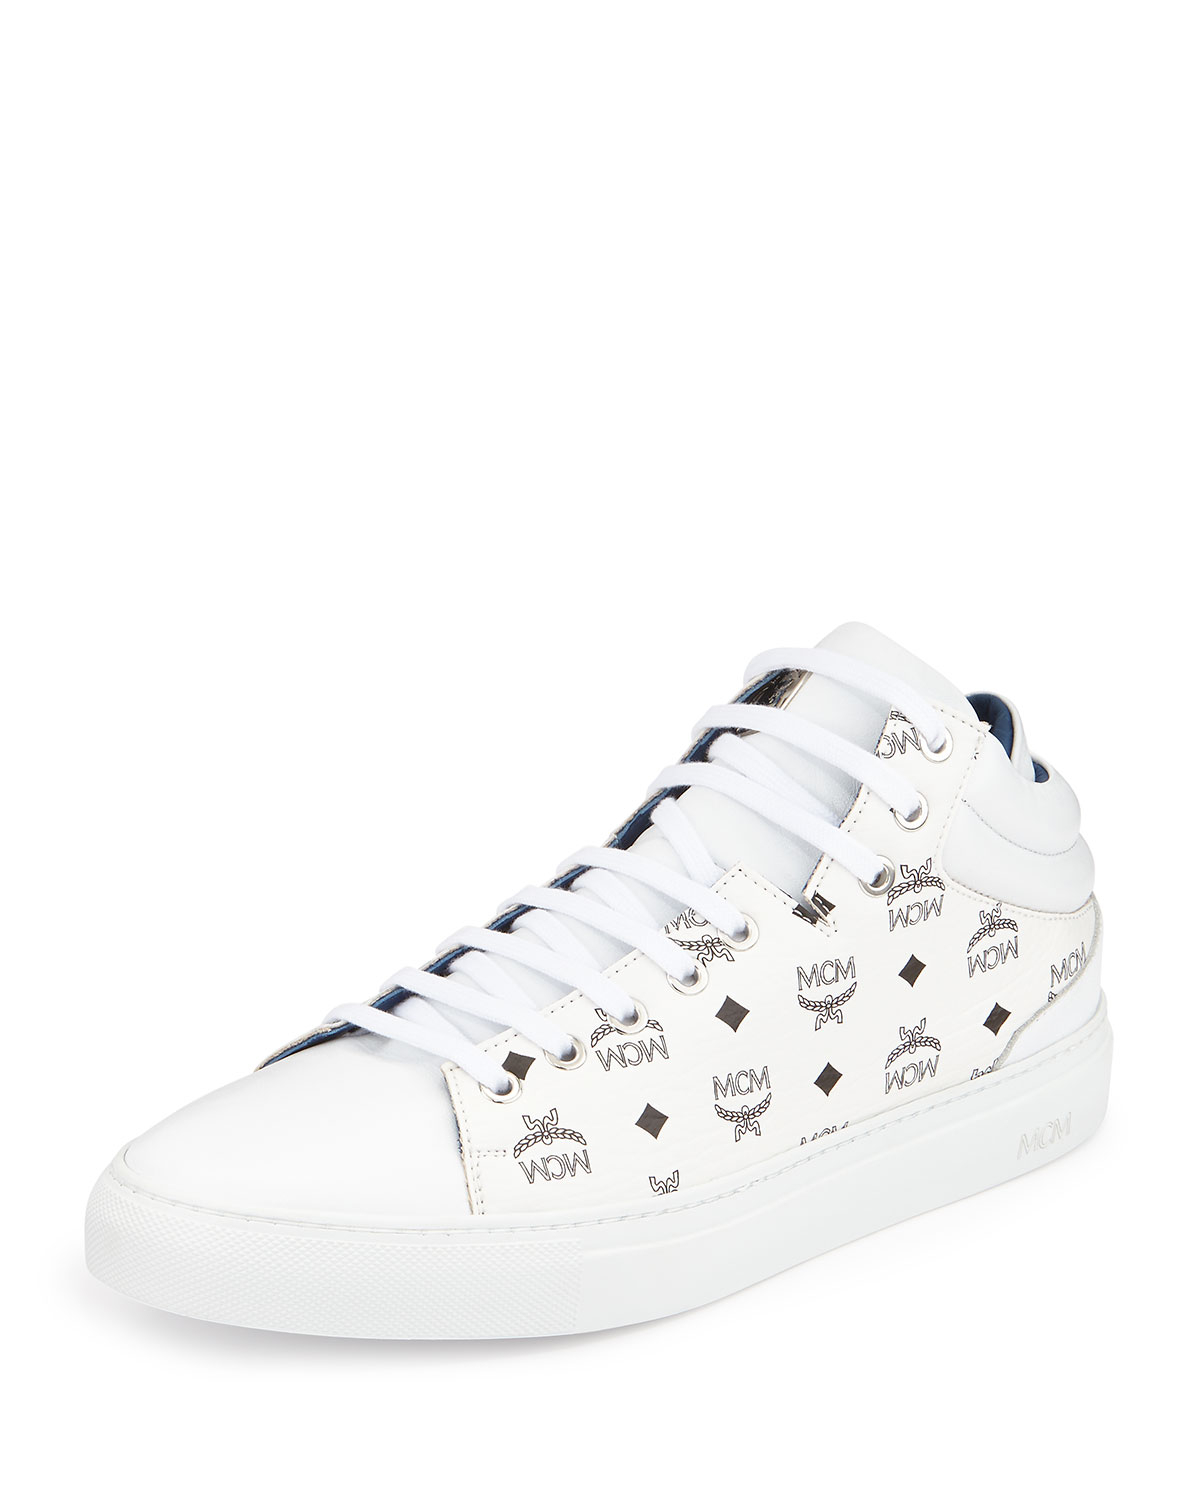 Mcm Monogrammed Low Top Sneakers In White For Men